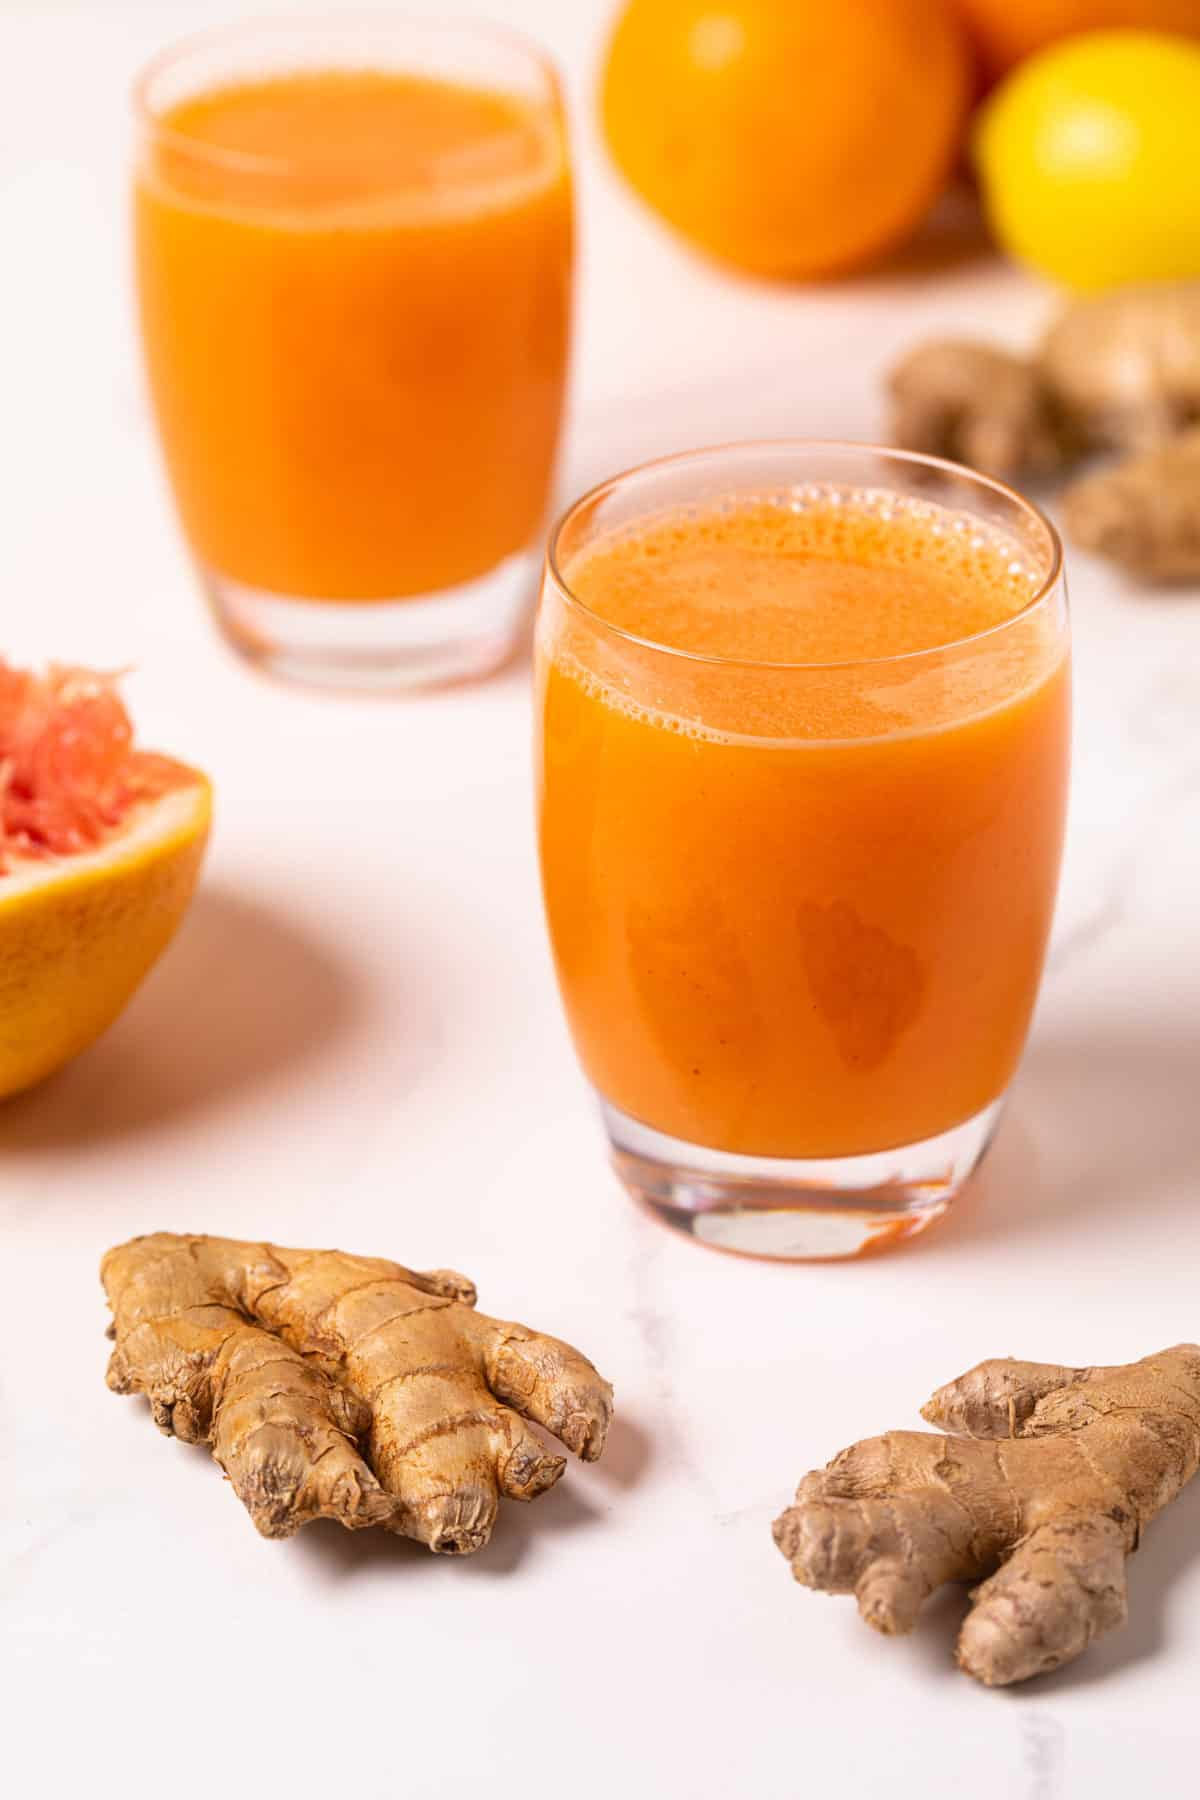 Carrot Ginger Citrus Turmeric Juice in a glass with fresh ginger root